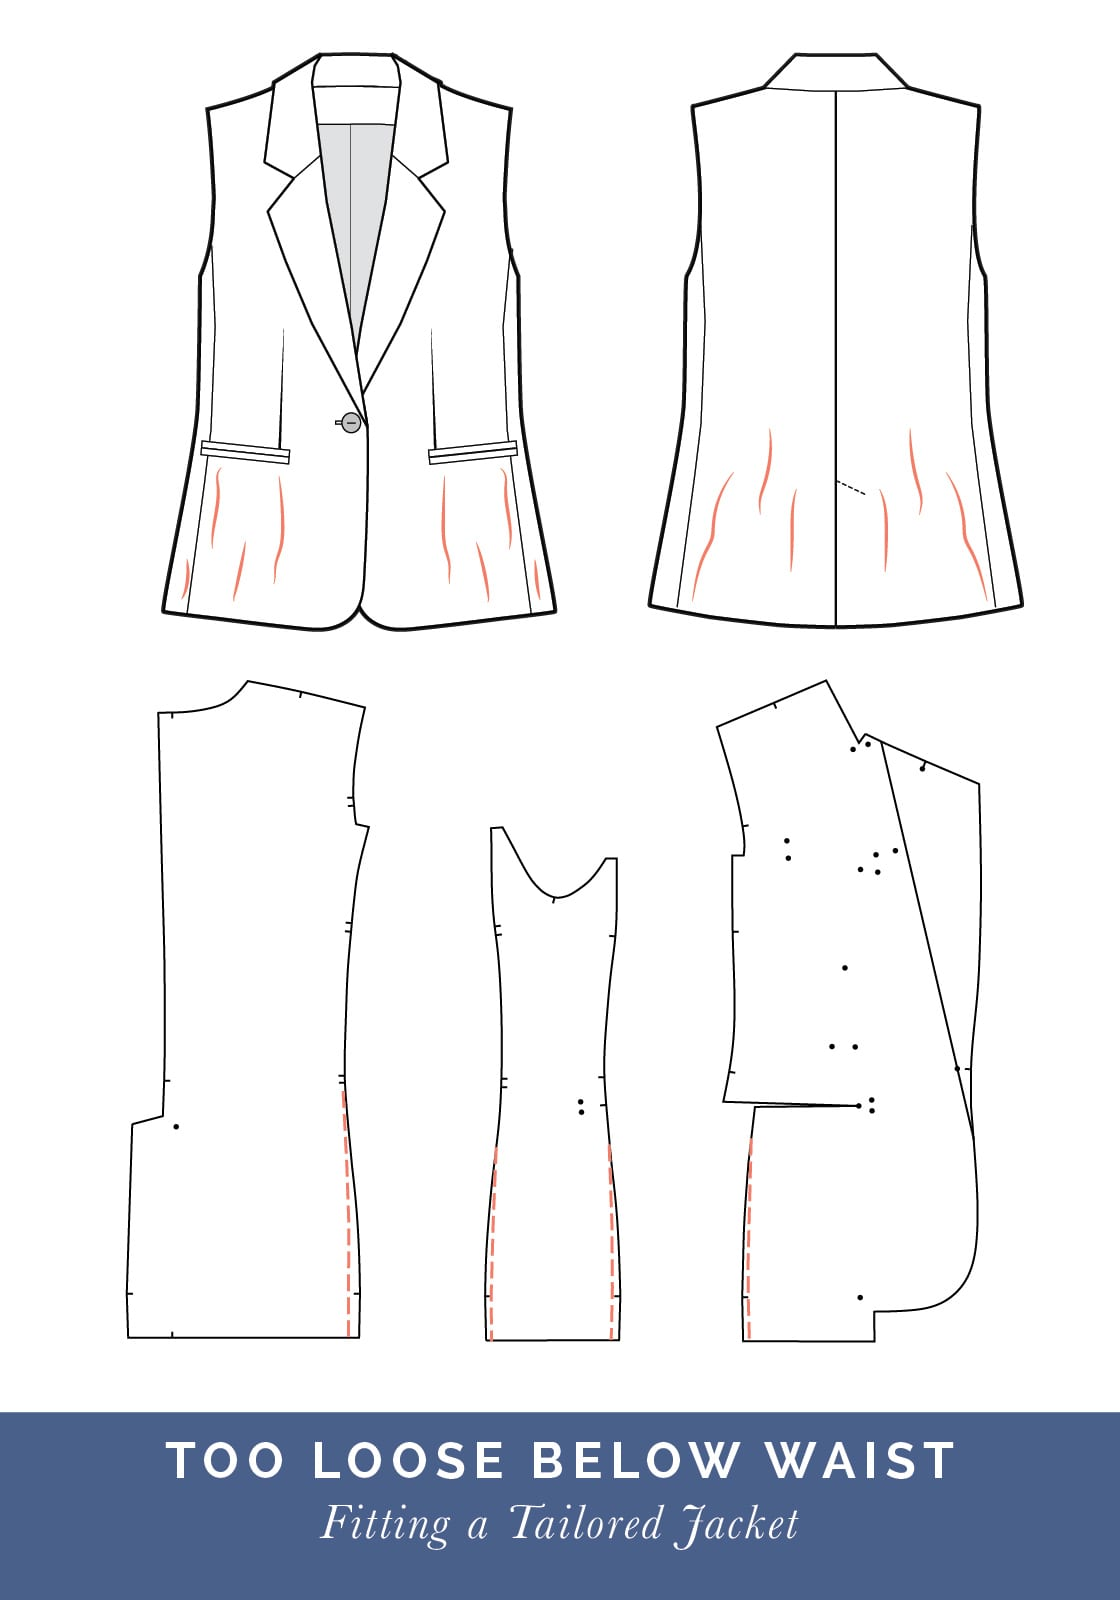 Jacket too loose below waist // How to fit a Tailored jacket or Blazer // Fit adjustment issues and fixes